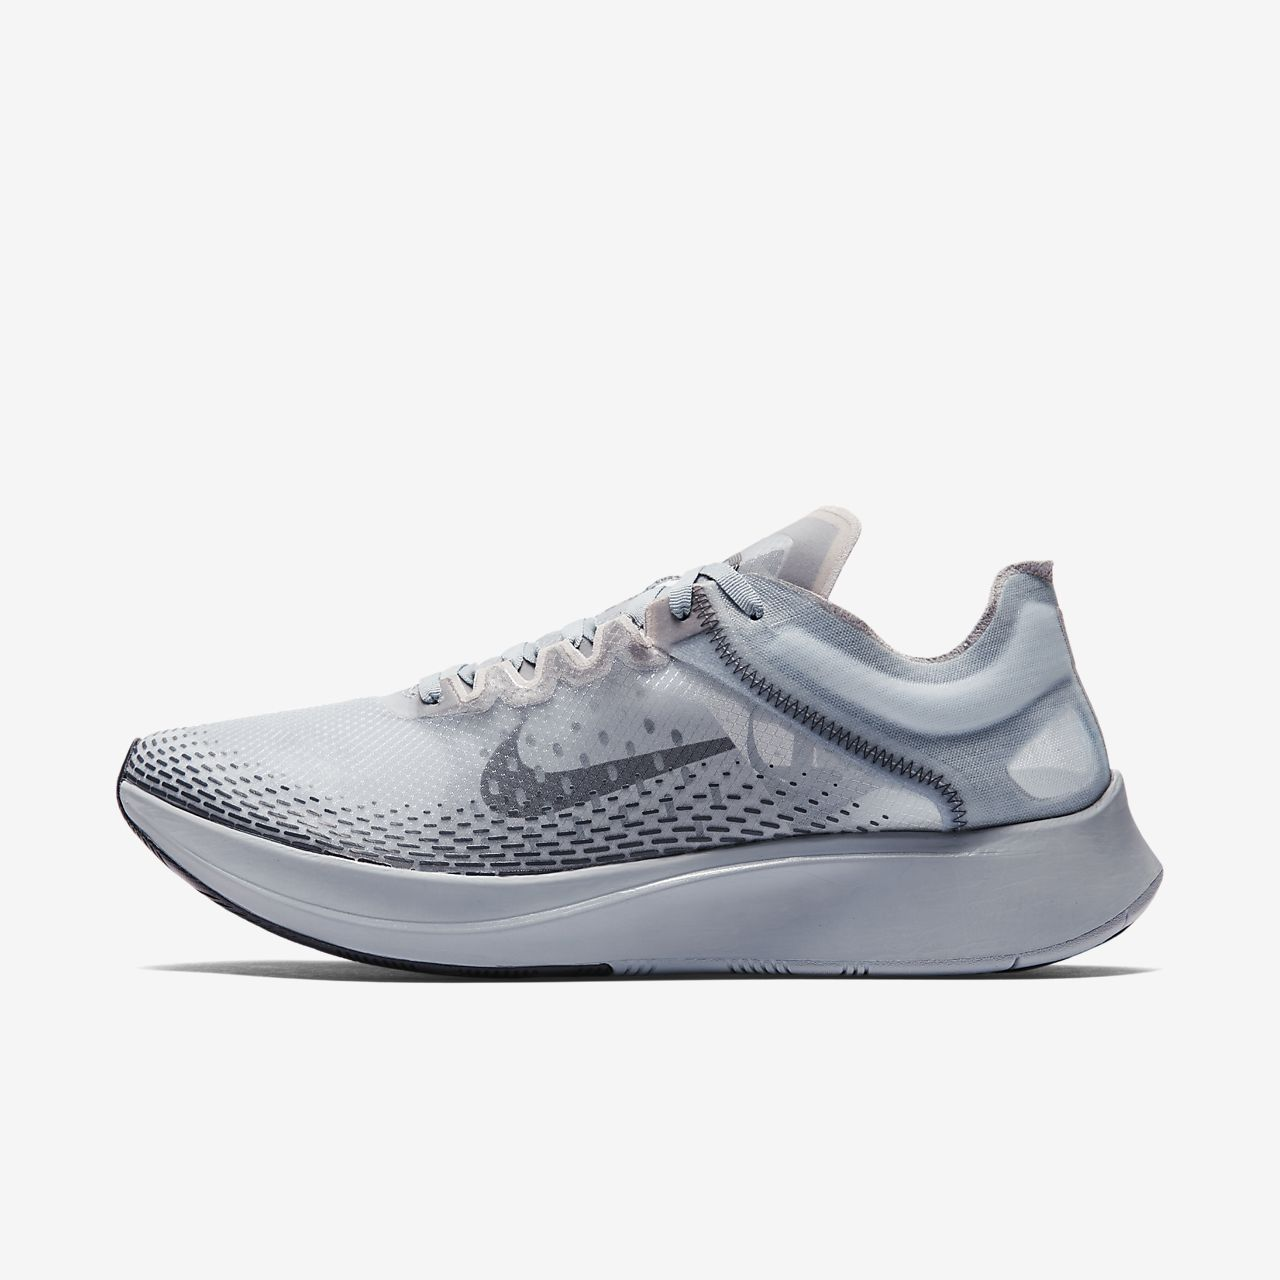 Nike Zoom Fly SP Fast Unisex Running Shoe